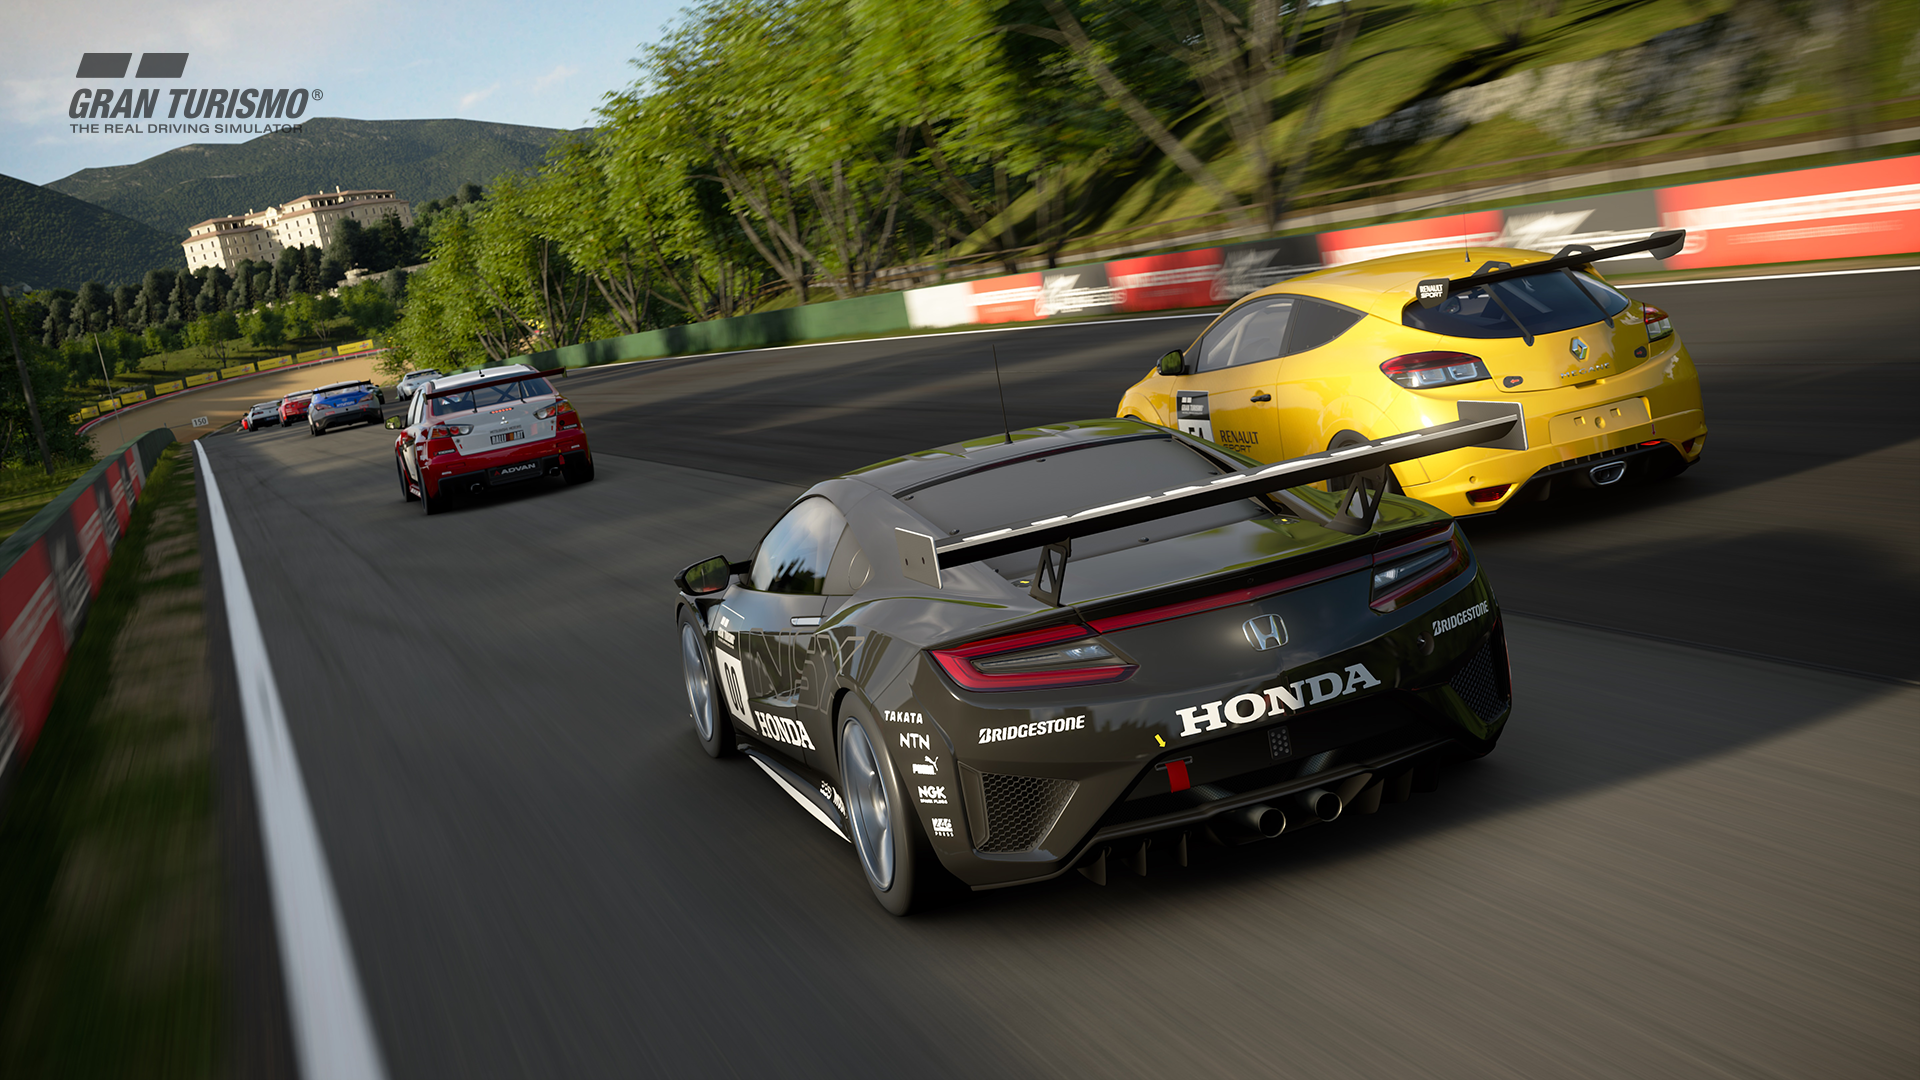 Gran Turismo Has Always Skewed More Towards The Realistic Simulation End Of  The Spectrum In Order To Provide An Accurate Experience For Virtual Racers.